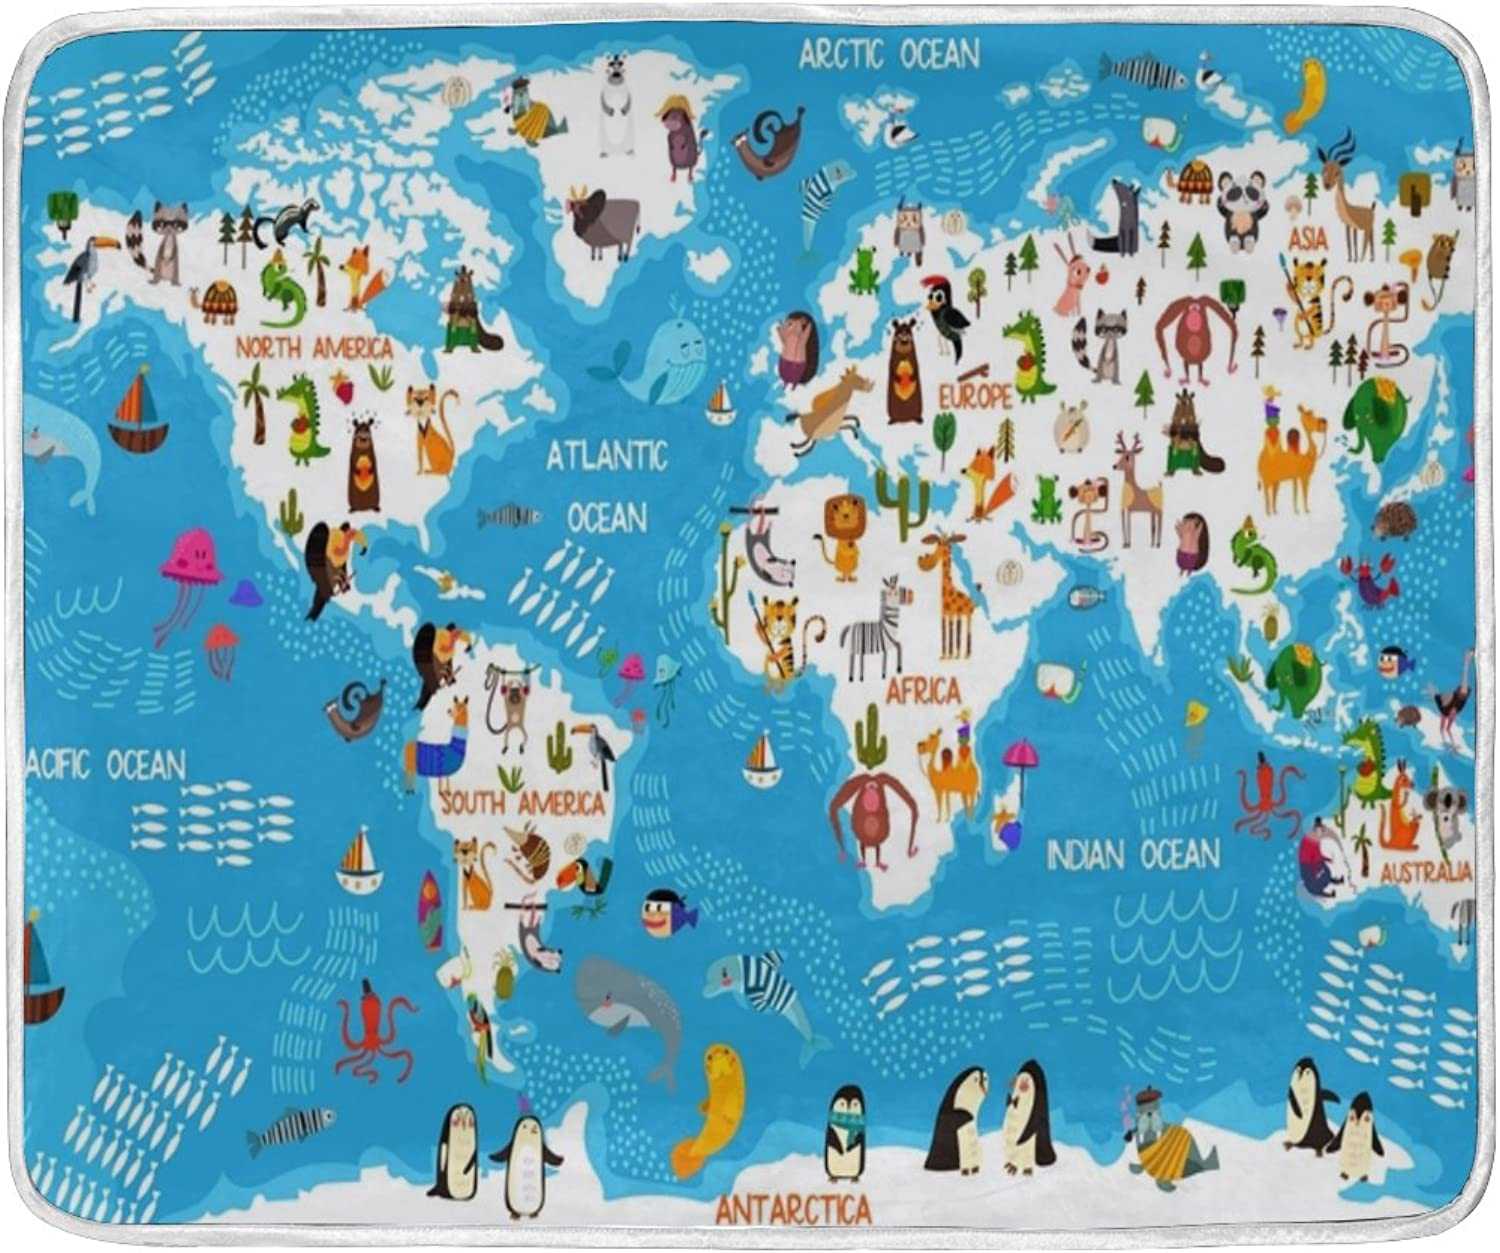 U LIFE Cute Animal World Map Soft Fleece Throw Blanket Blankets for Nap Couch Bed Kids Adults 50 x 60 inch